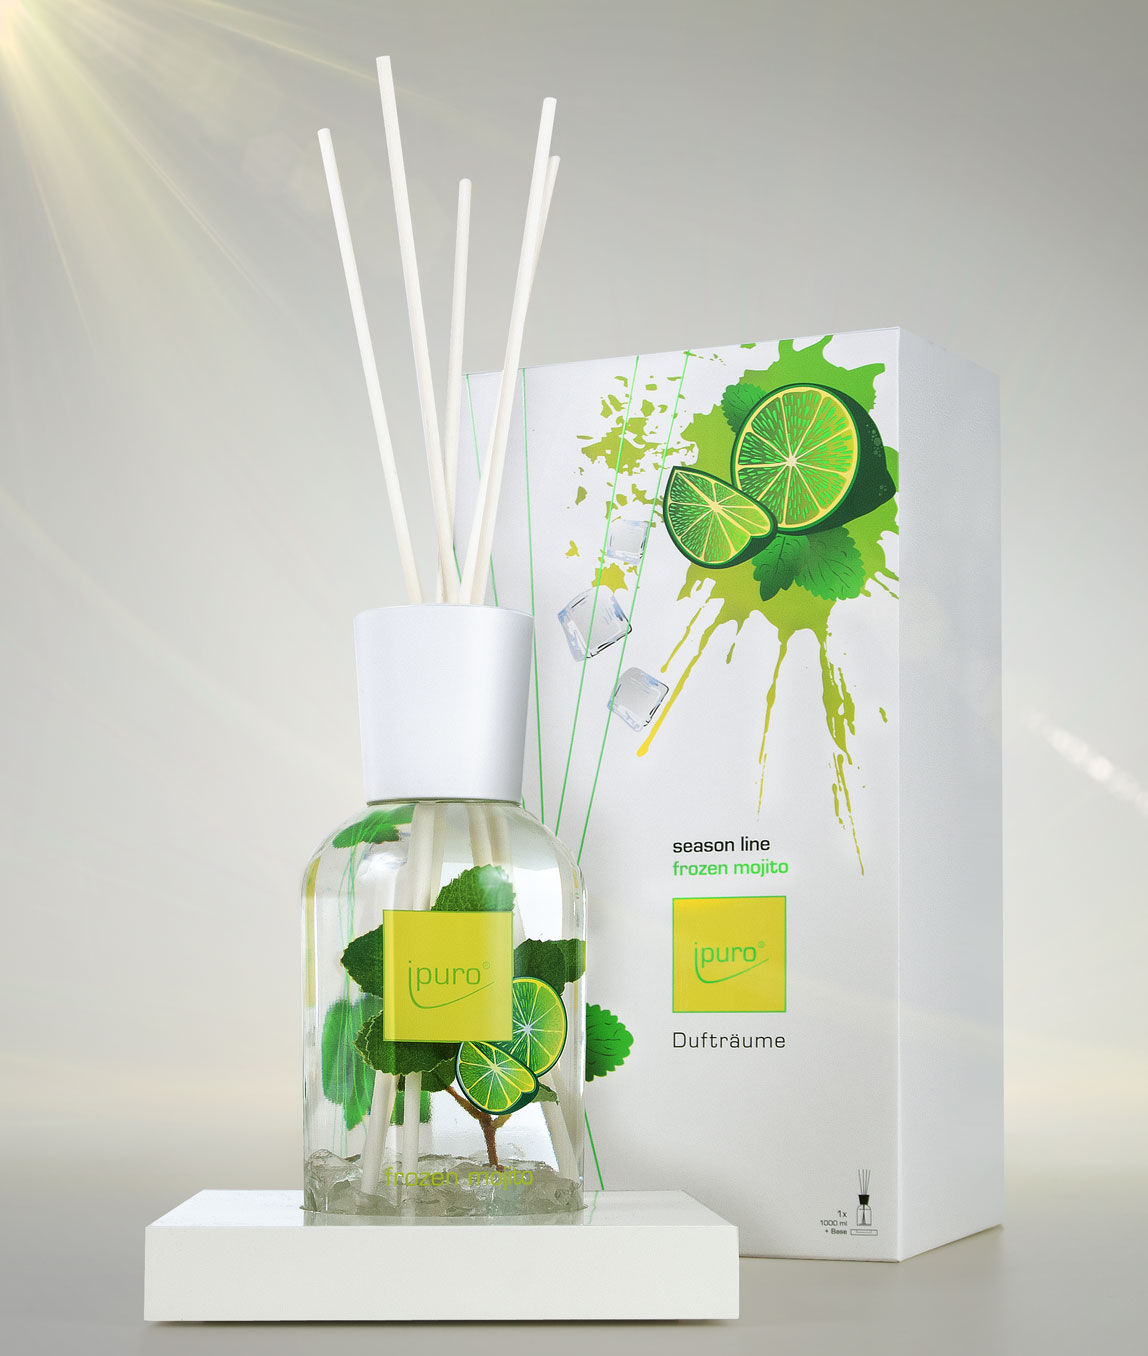 ipuro perfumes room perfume frozen mojito surface. Black Bedroom Furniture Sets. Home Design Ideas